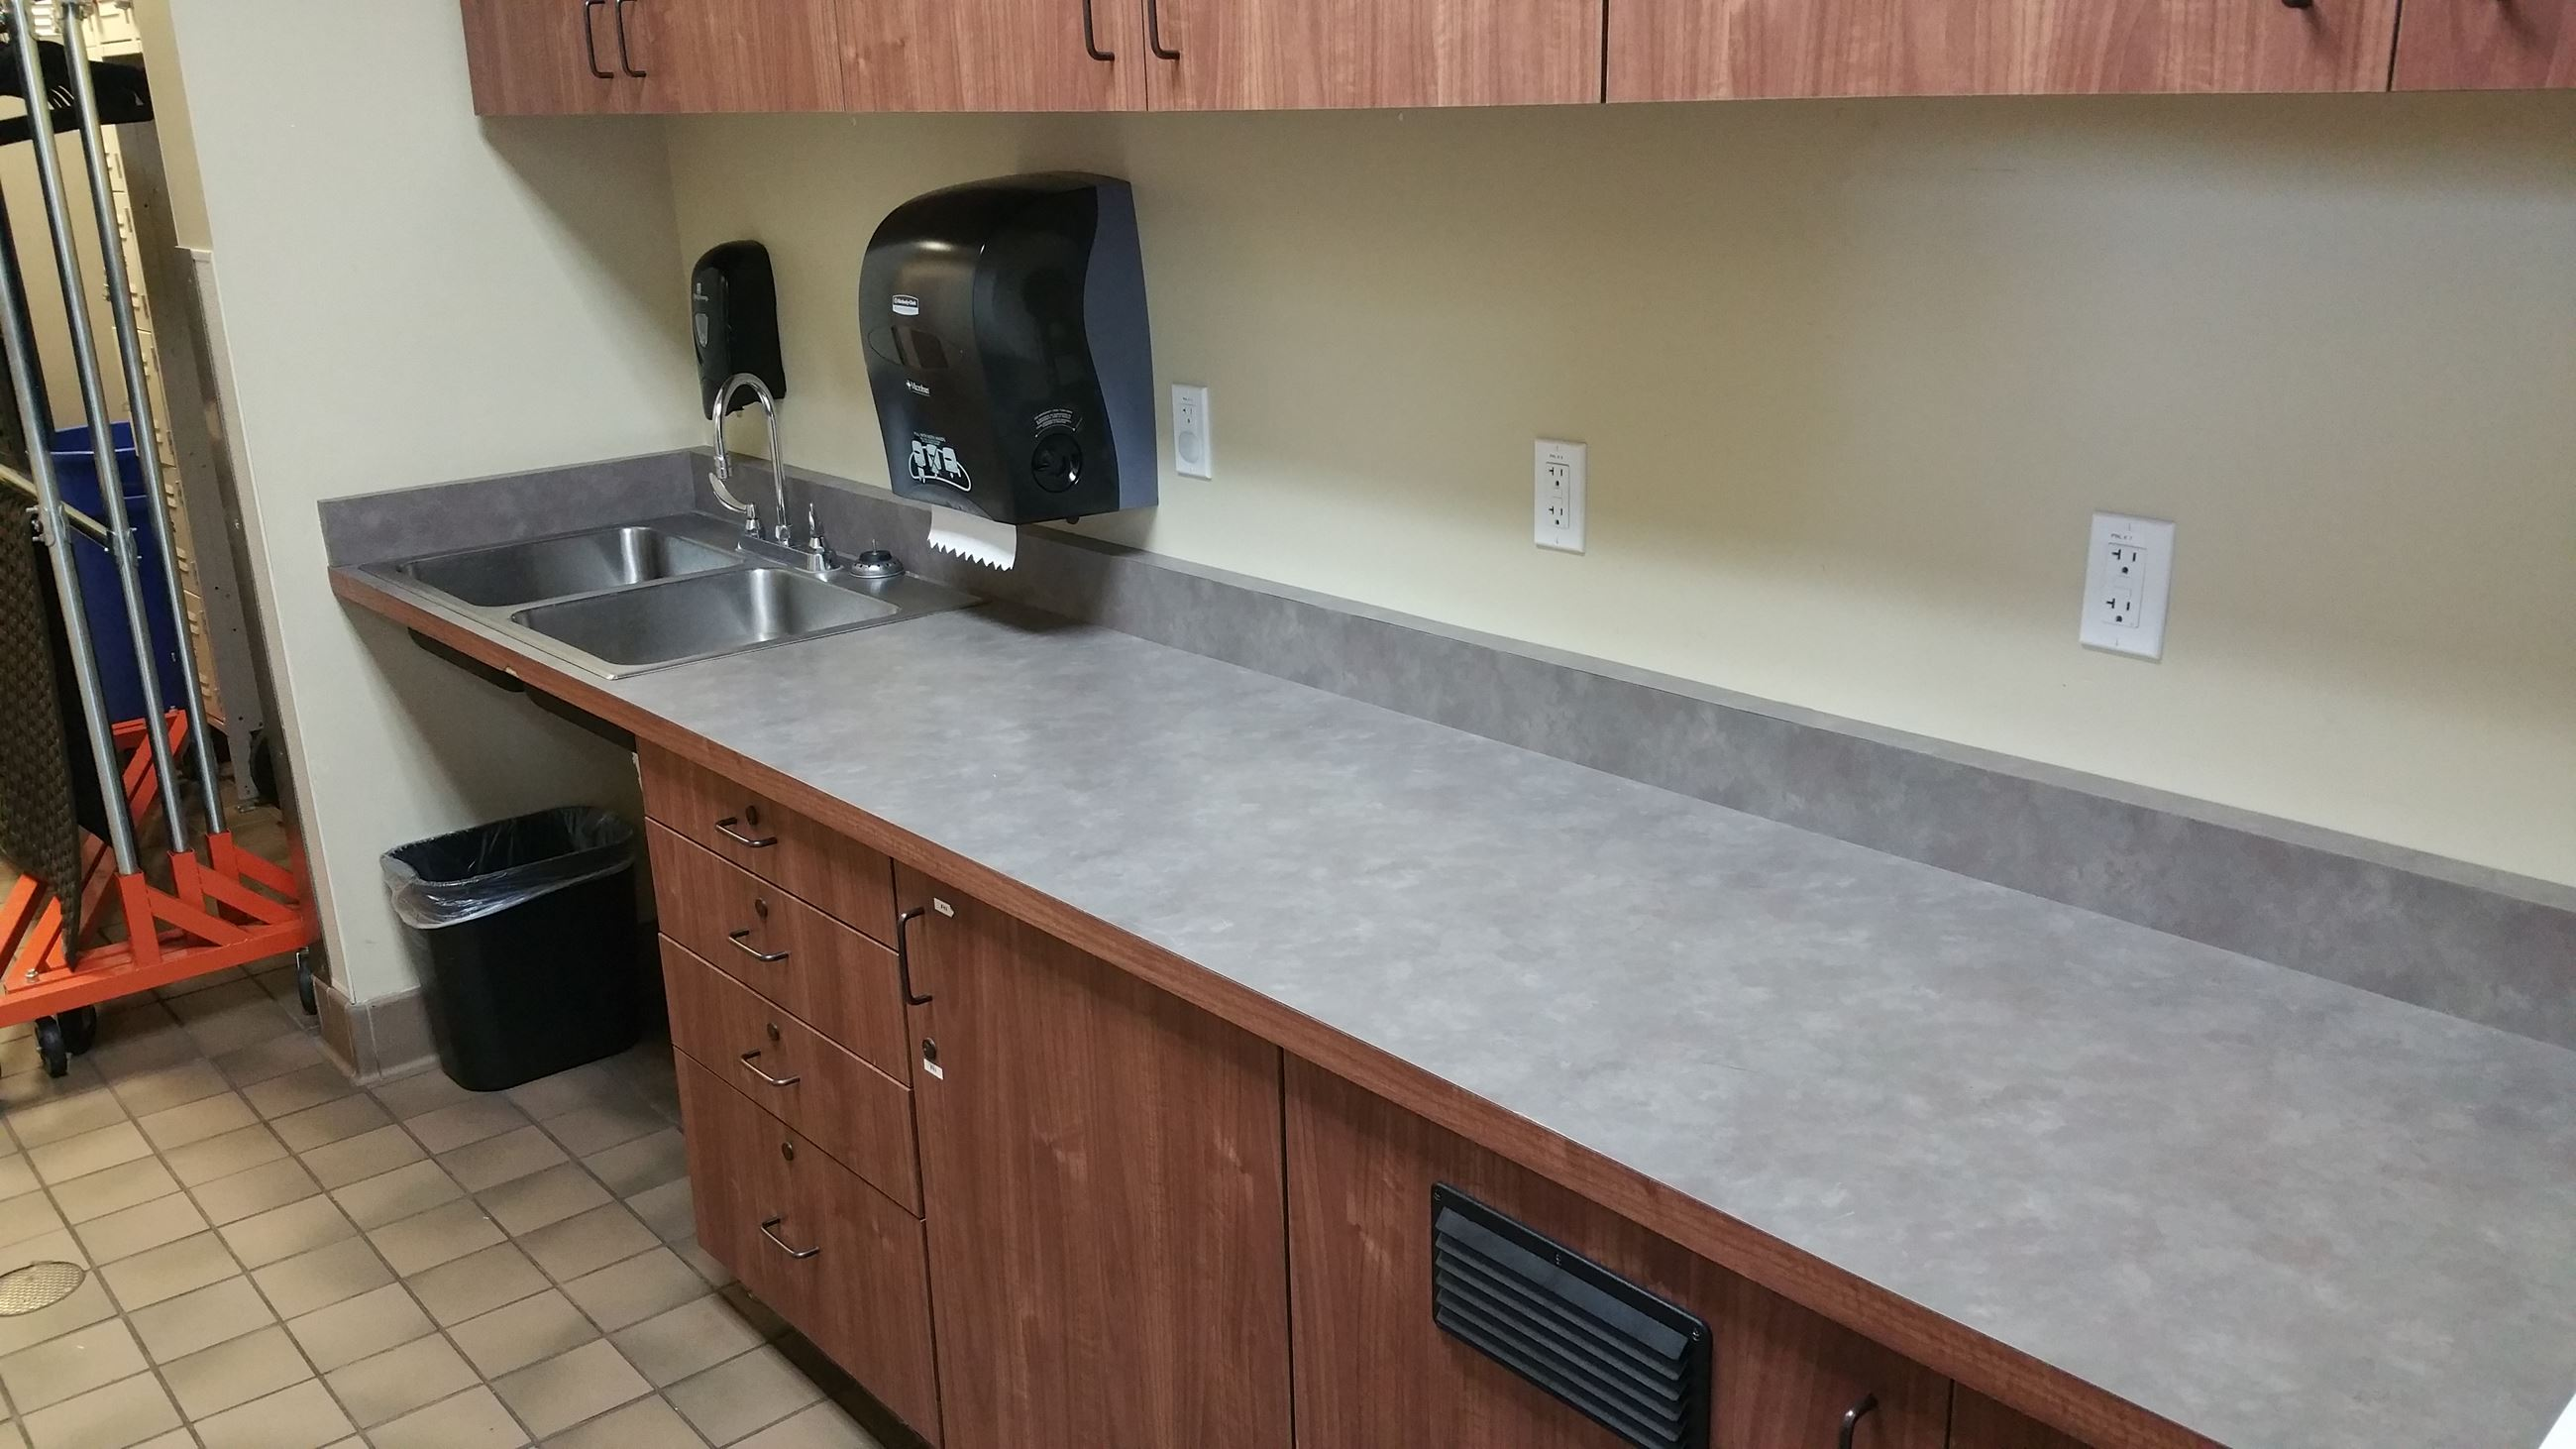 McHale Sink area